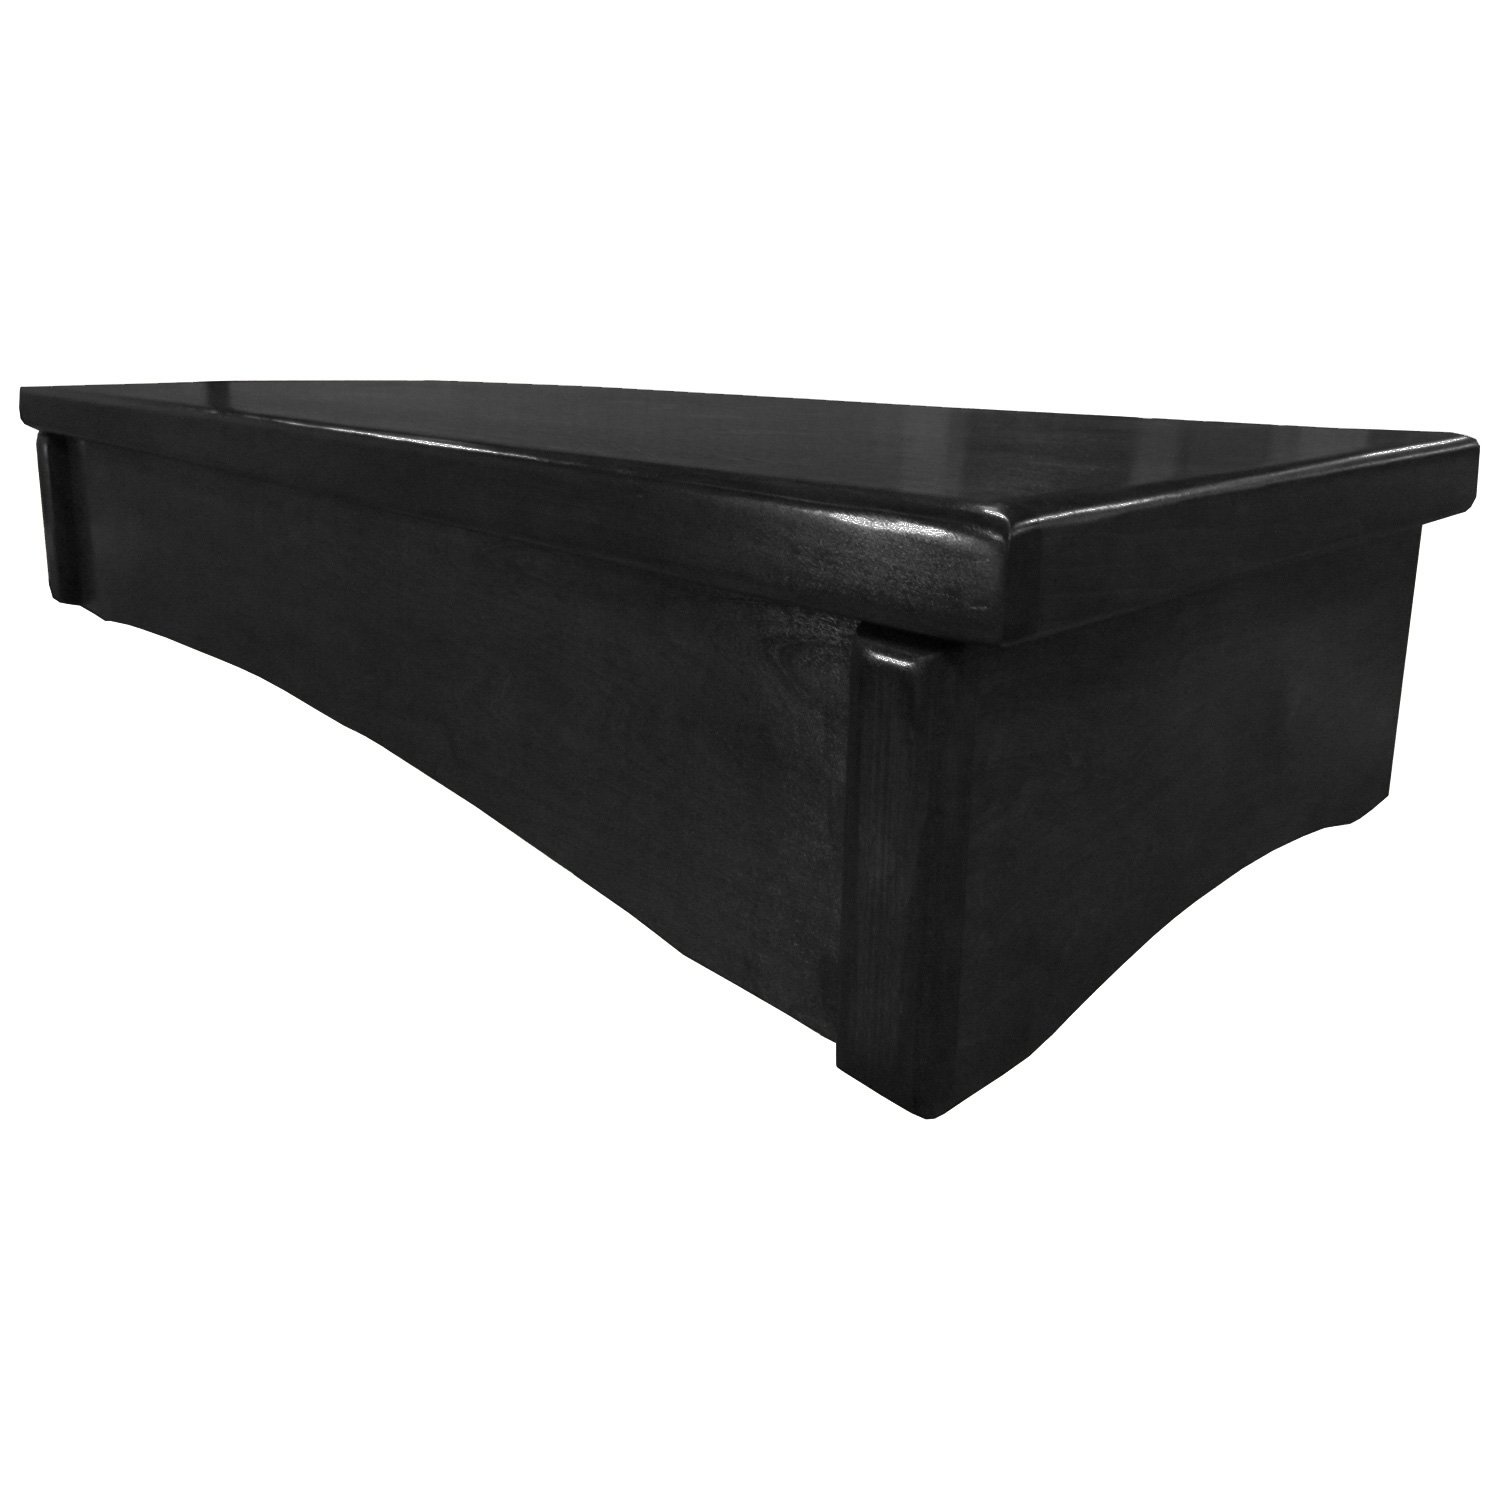 R&J Enterprises 48X13 Black Birch Calypso Series 55 Canopy